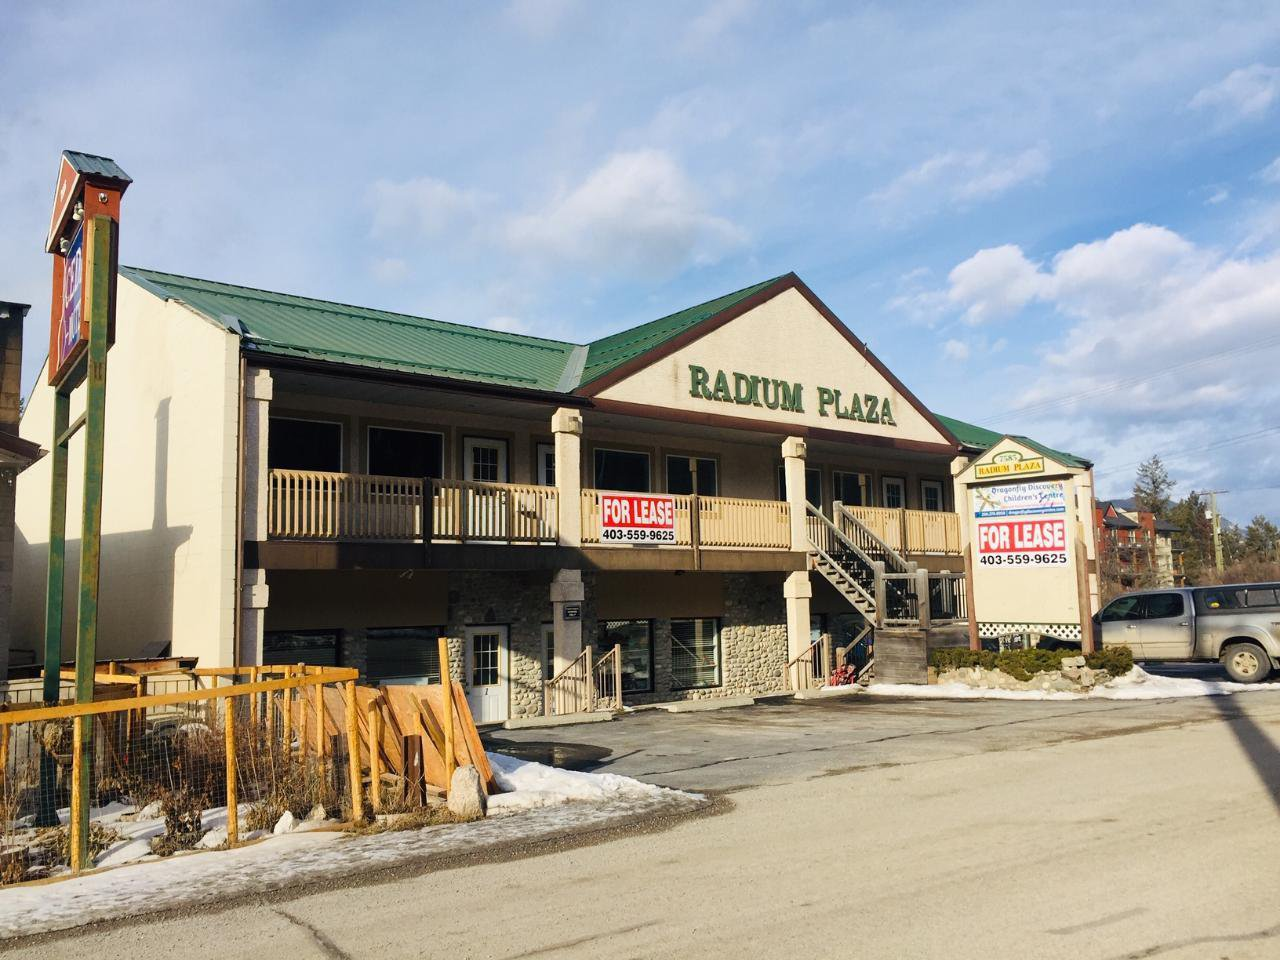 Main Photo: 7585 MAIN STREET W in Radium Hot Springs: Retail for sale : MLS®# 2450642